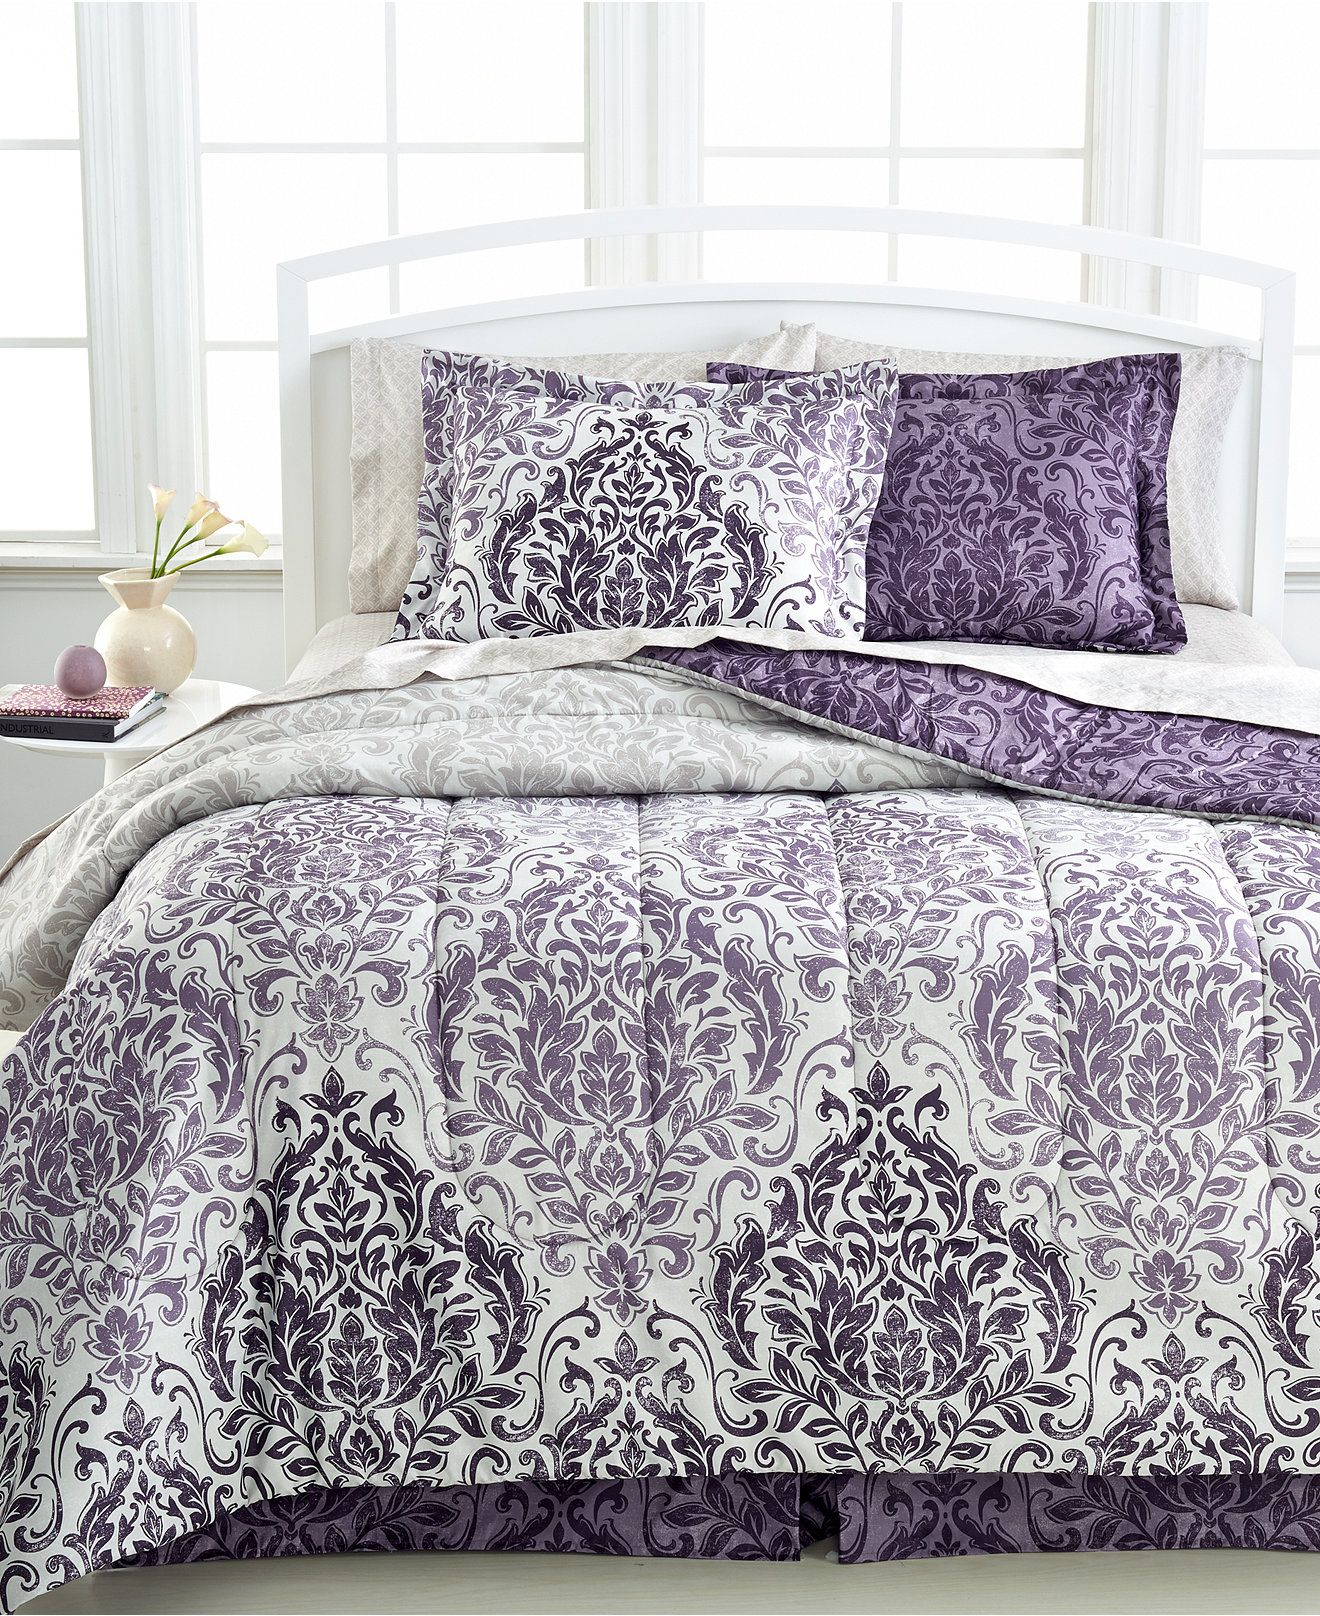 CLOSEOUT Carey 8 Pc Reversible Bedding Ensembles Bed in a Bag